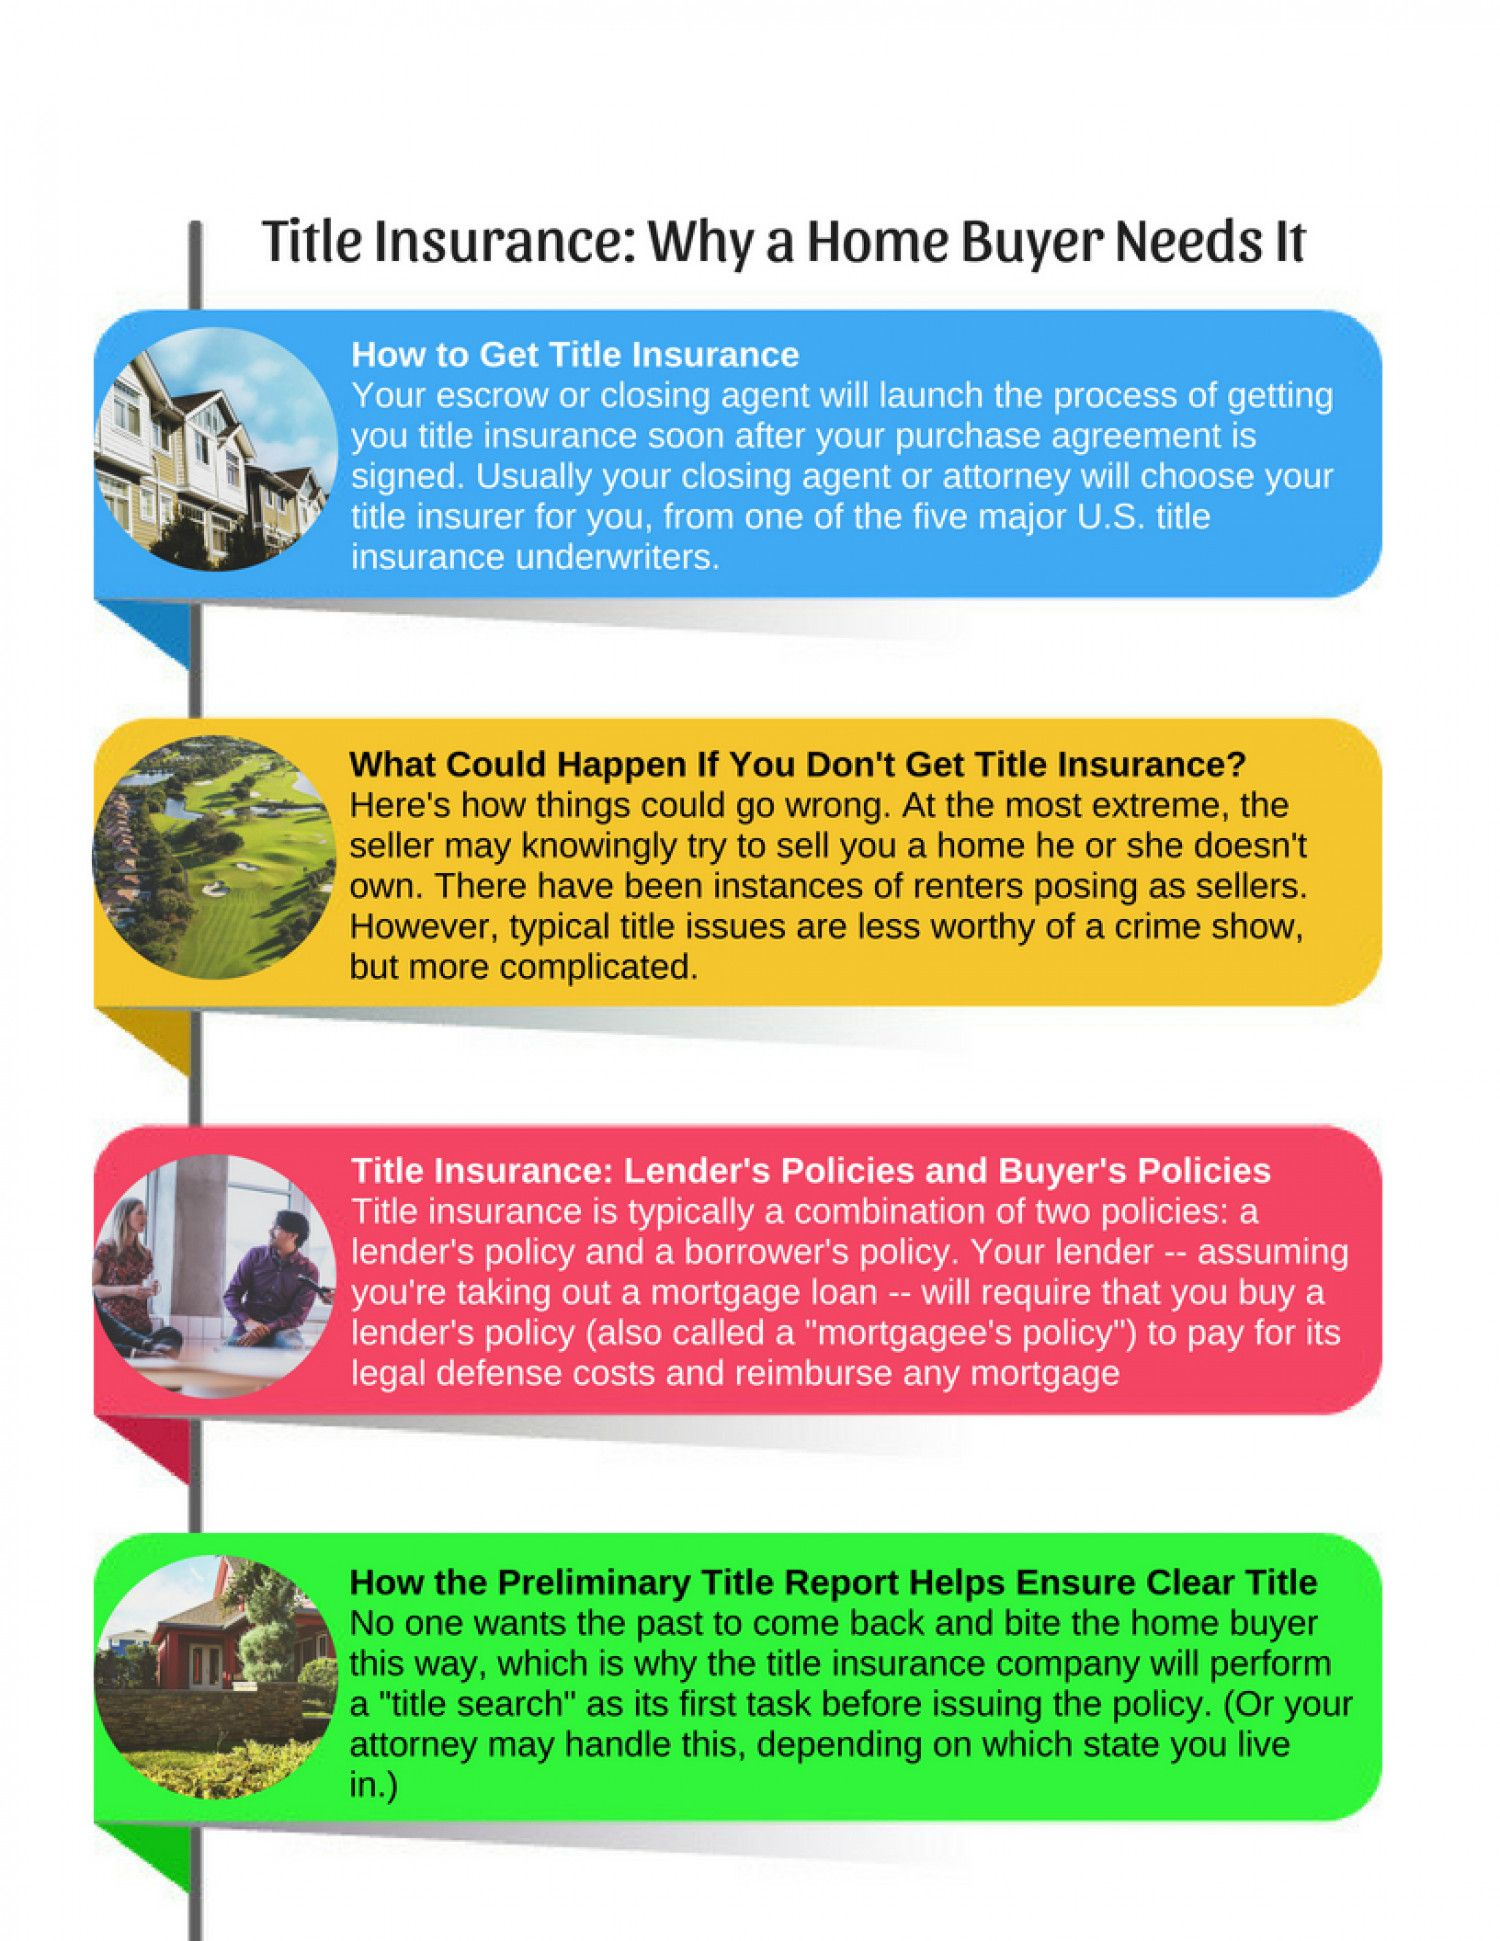 Getting Title Insurance Is One Of The Standard Steps Home Buyers Take Before Closing On A Home Purchase Title Insurance Insurance Title